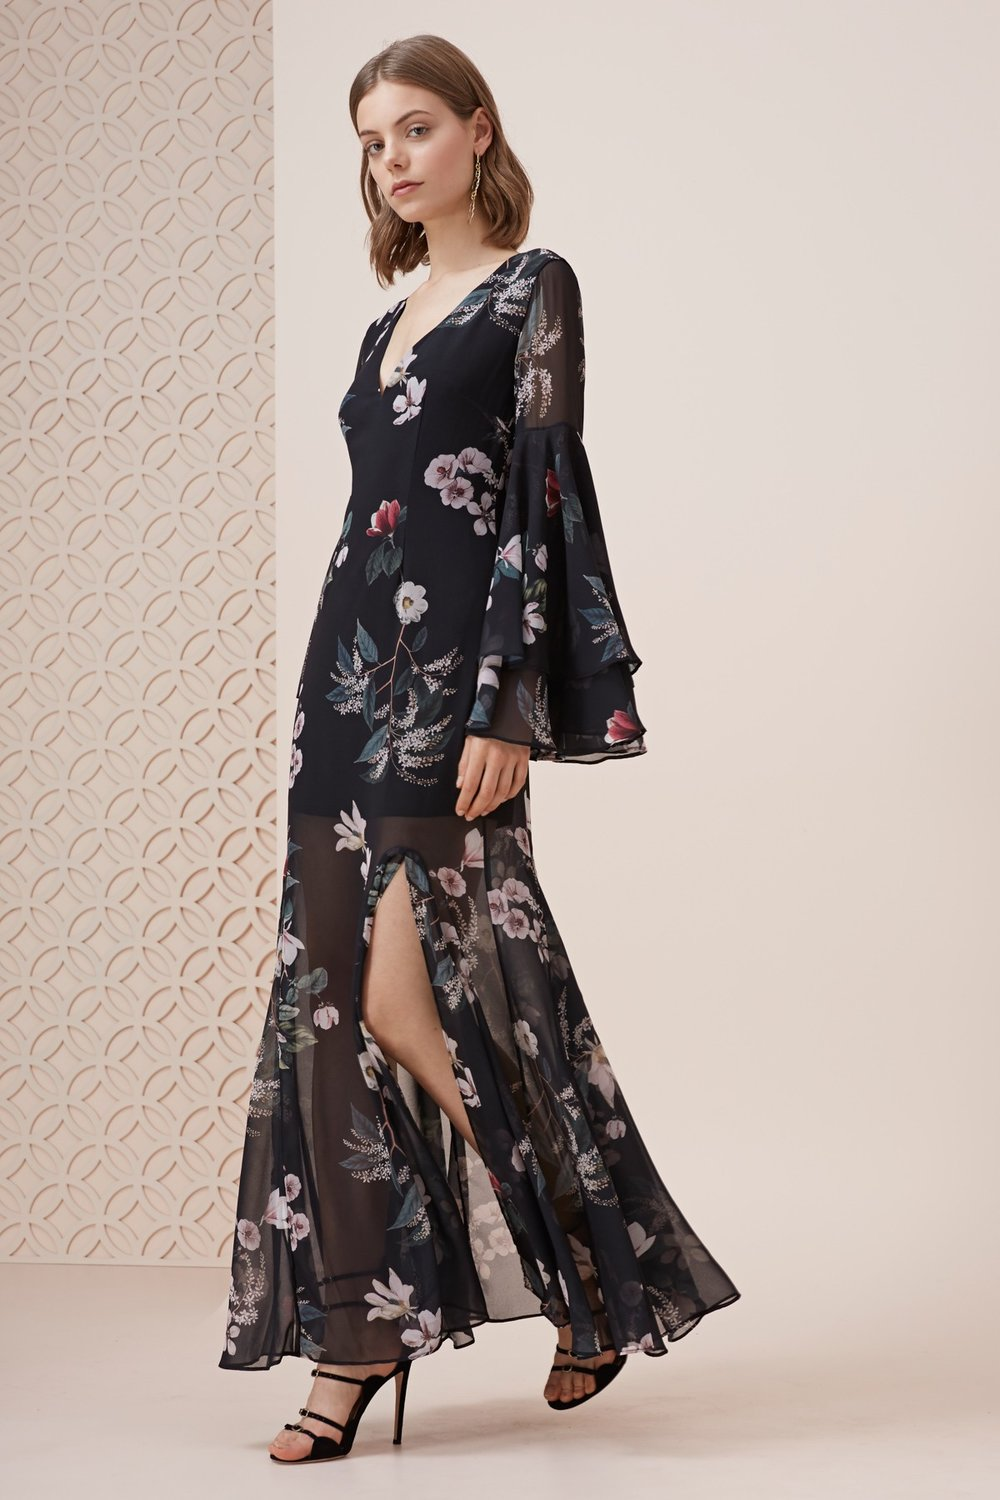 Keepsake The Label Cosmic Girl L/S Maxi Dress